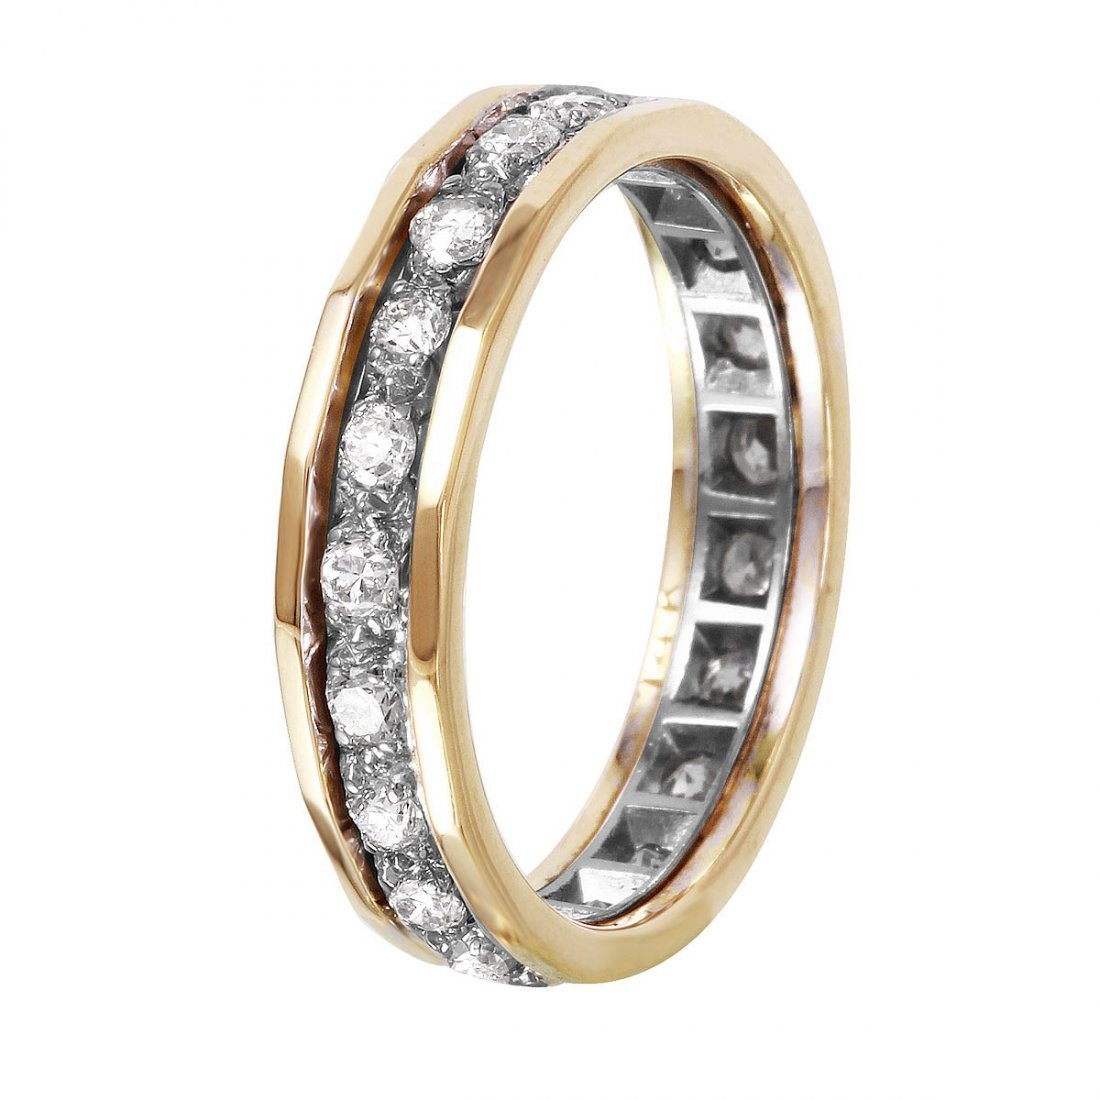 14KT Yellow and White Gold Diamond Eternity Band